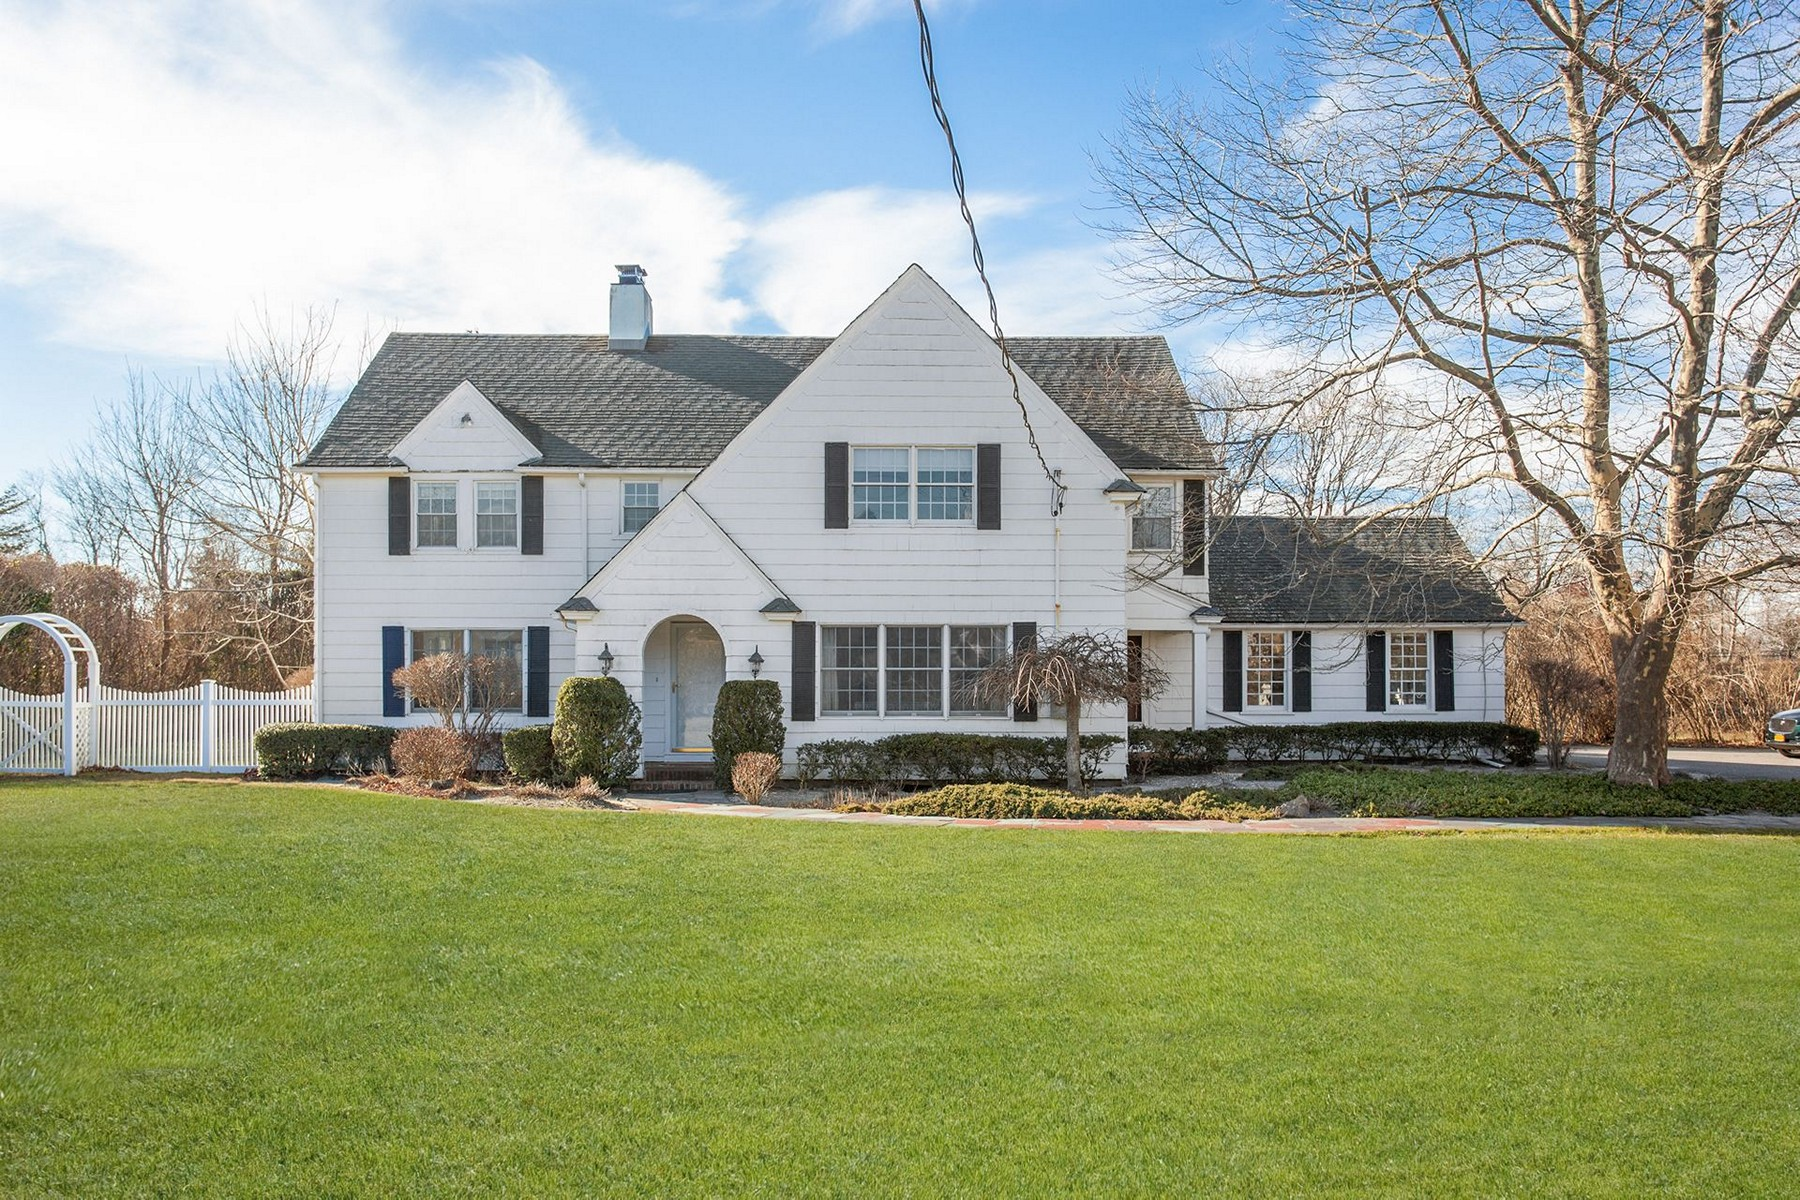 Single Family Home for Active at Westhampton Bch 29 Beach Ln Westhampton Beach, New York 11978 United States